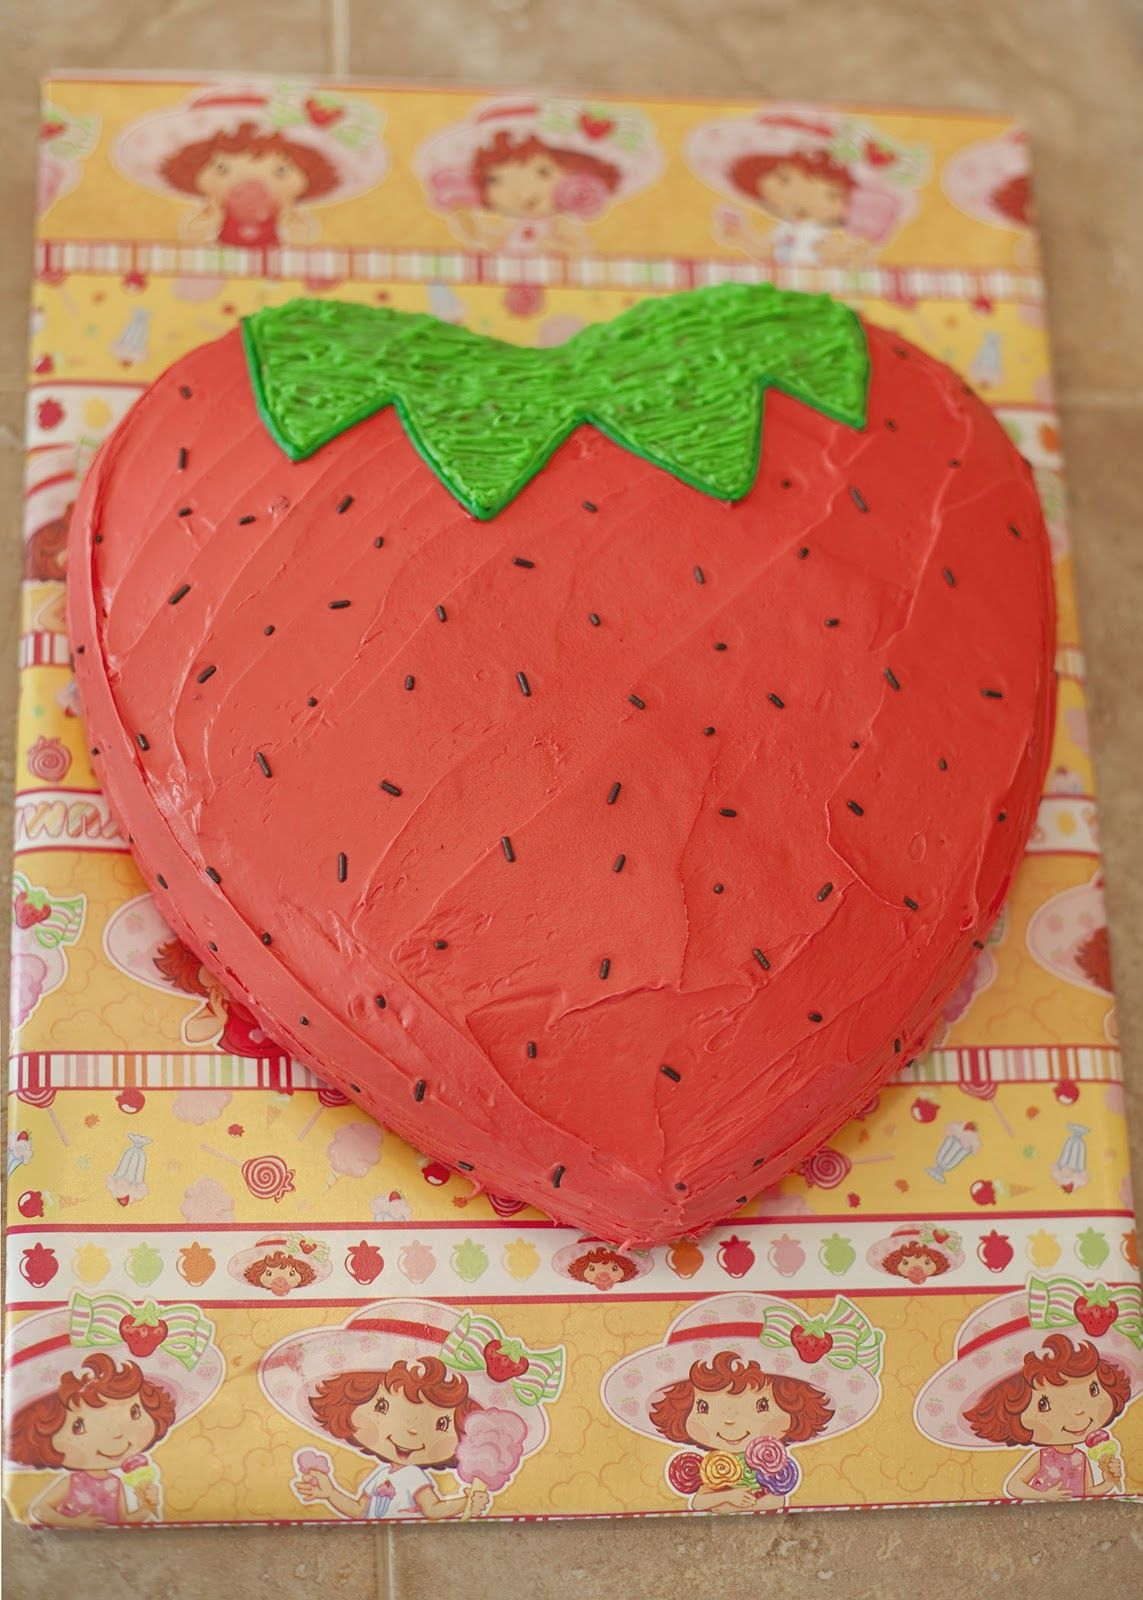 strawberry shaped cake - Google Search More  sc 1 st  Pinterest & strawberry shaped cake - Google Search u2026 | Food youu2026